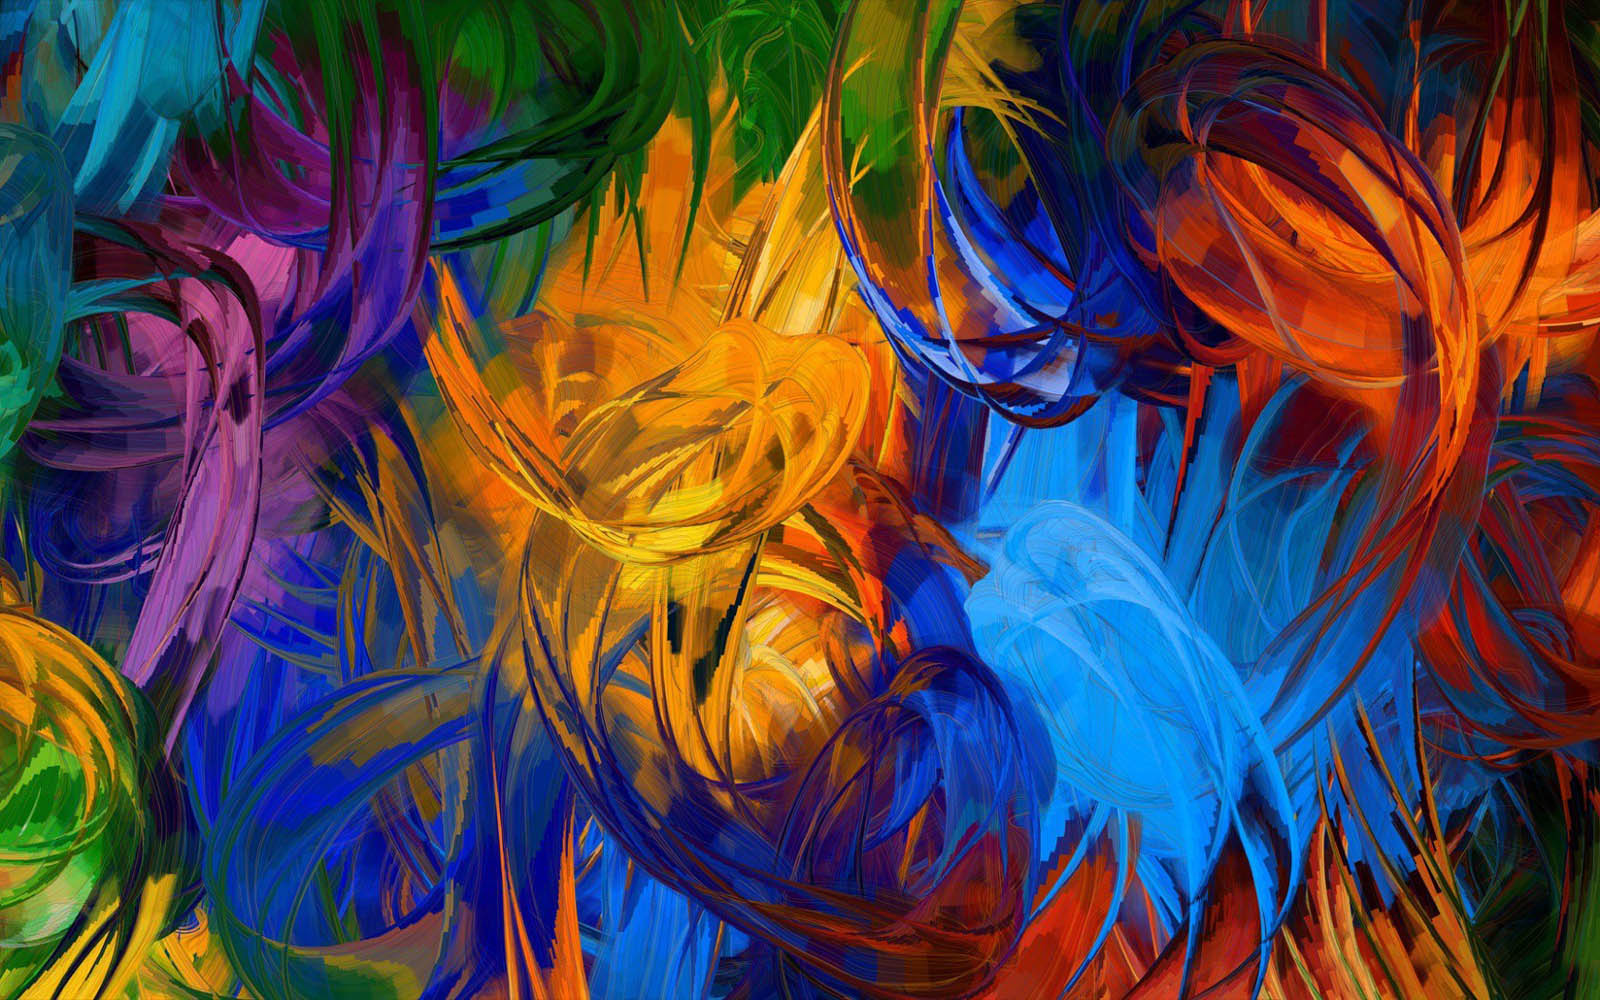 abstract art backgrounds - photo #19